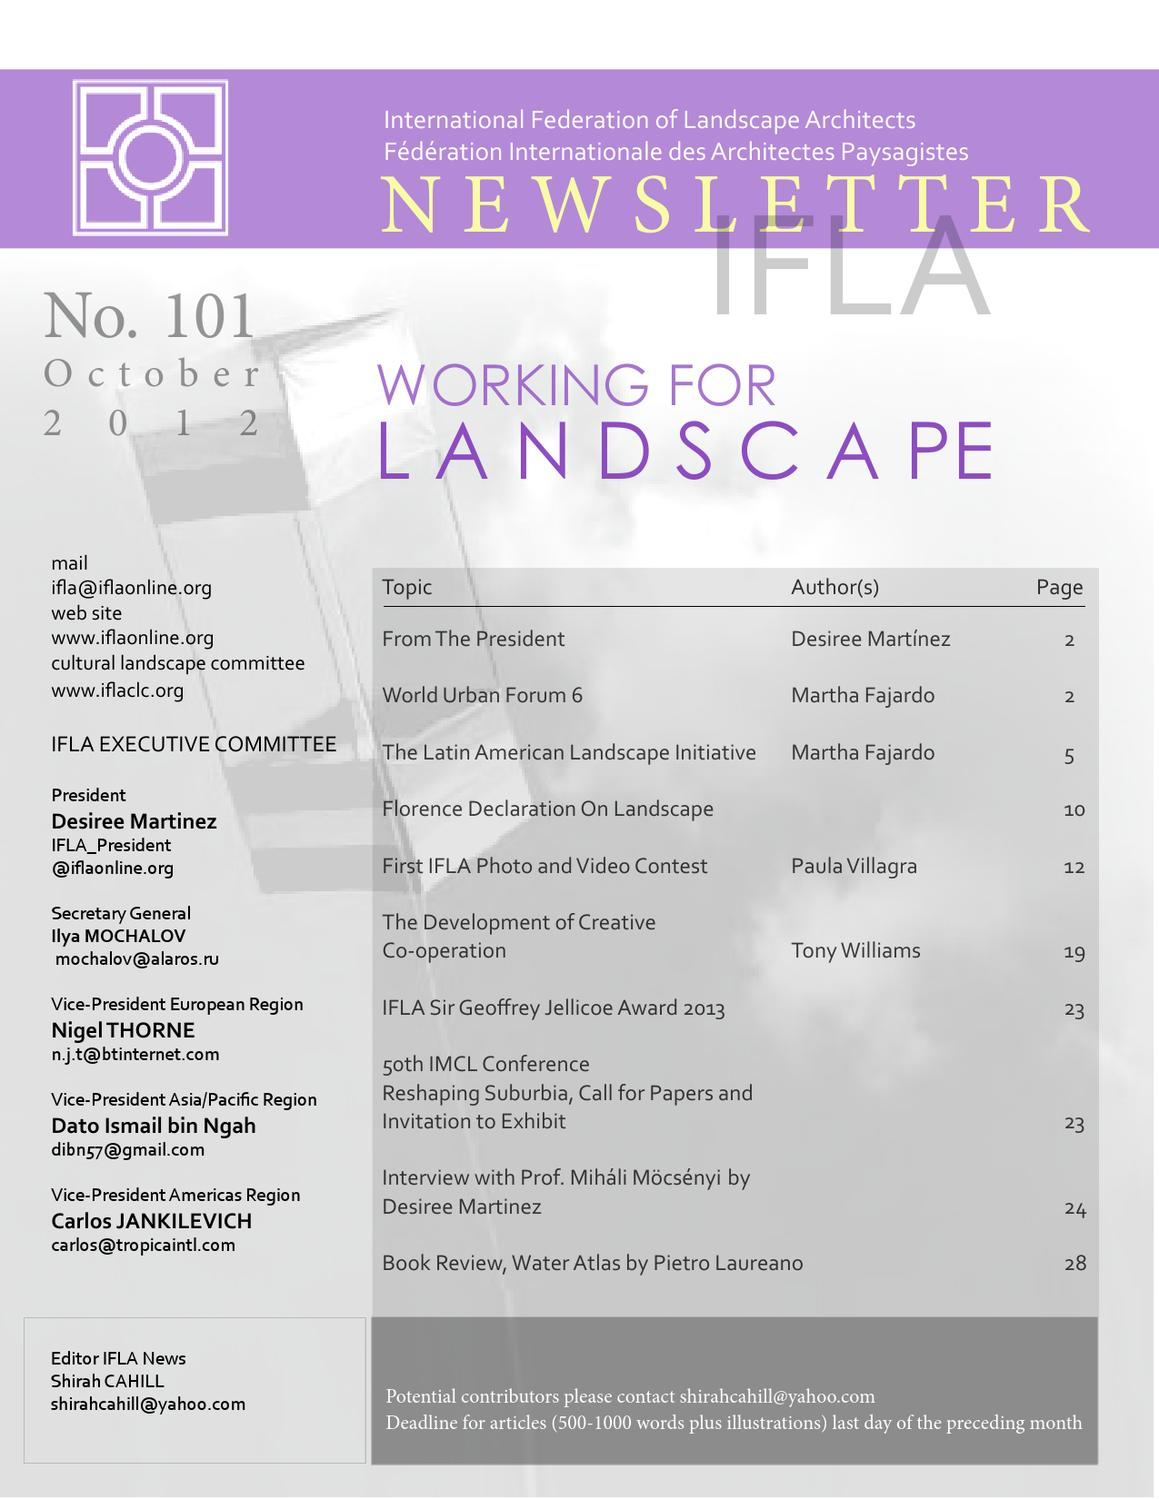 Ifla newsletter october 2012 by international federation for International federation of landscape architects